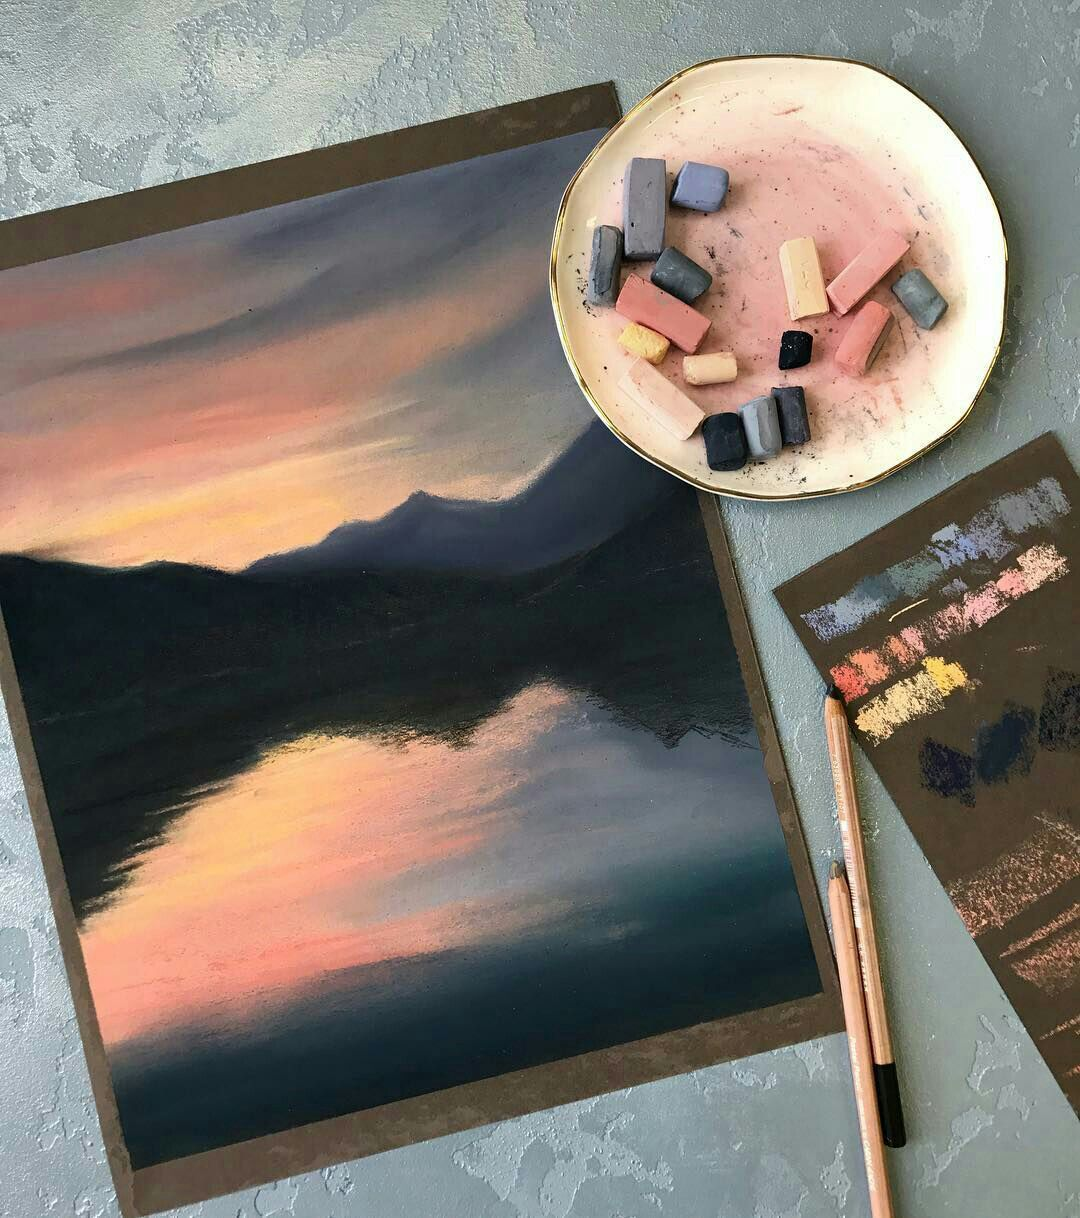 I Ve Never Been Good With Pastels But This Is Inspiring Cool Art